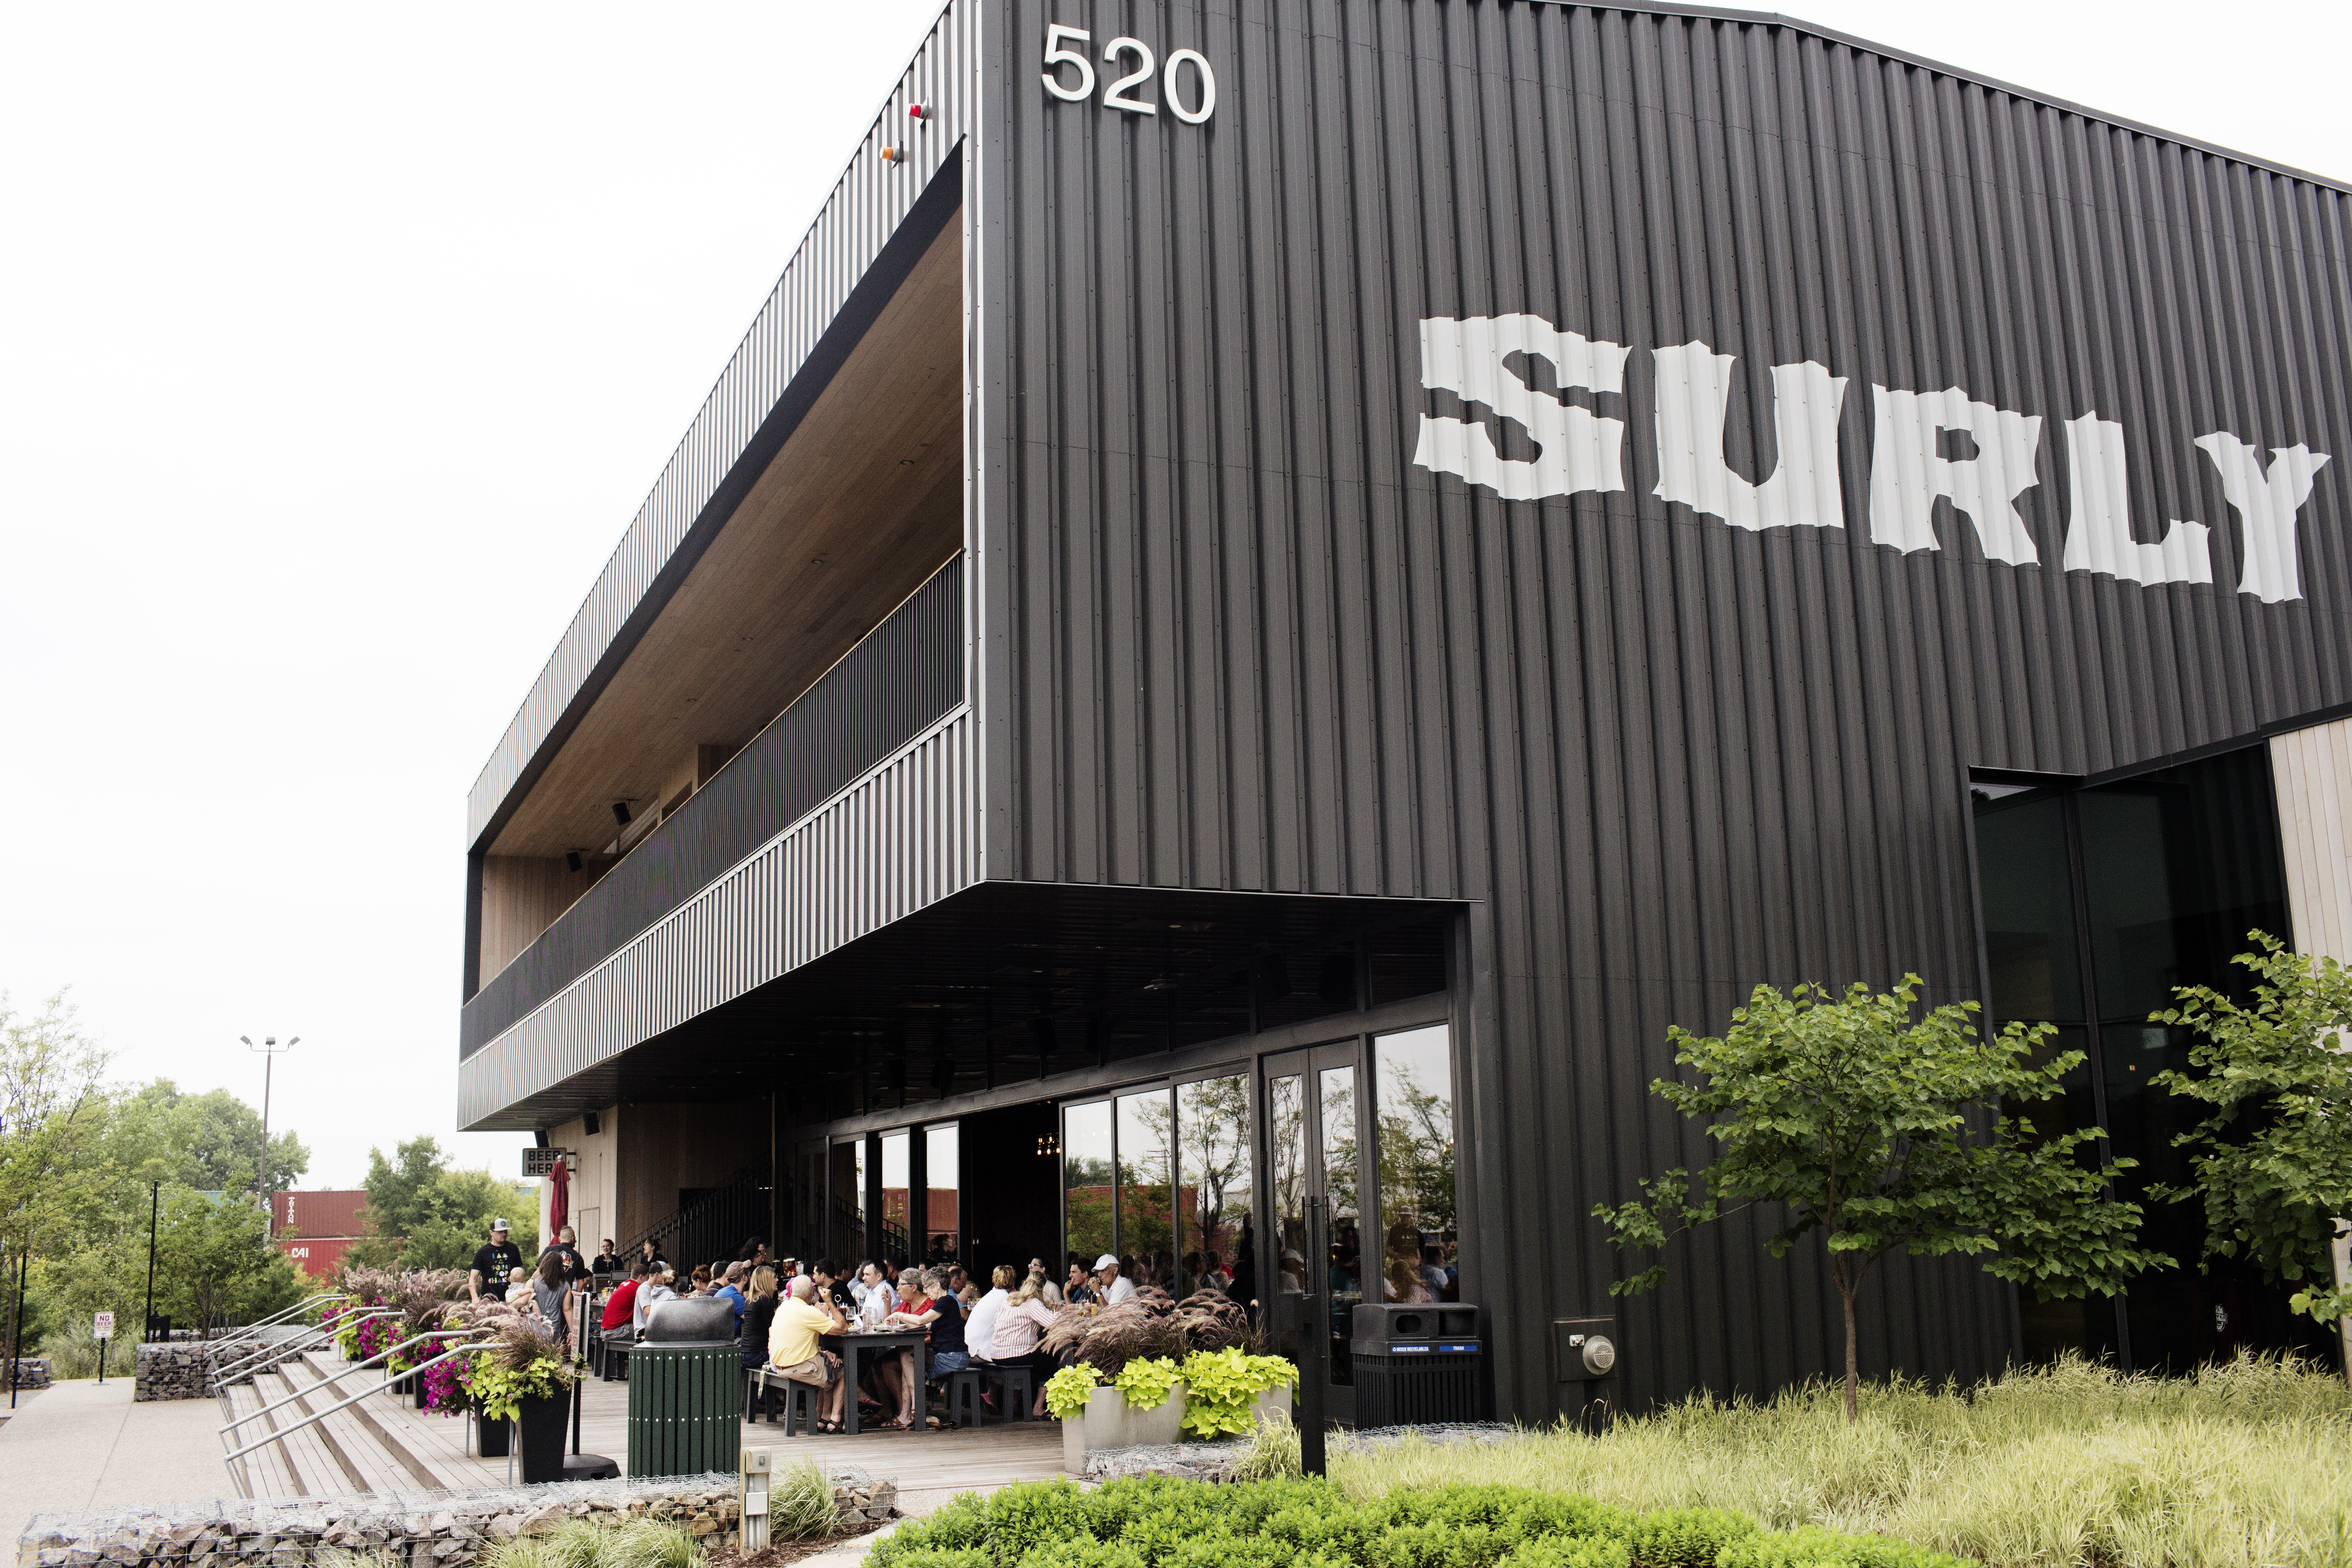 The black Surly building rises like a monolith over a small sidewalk patio with a table full of people